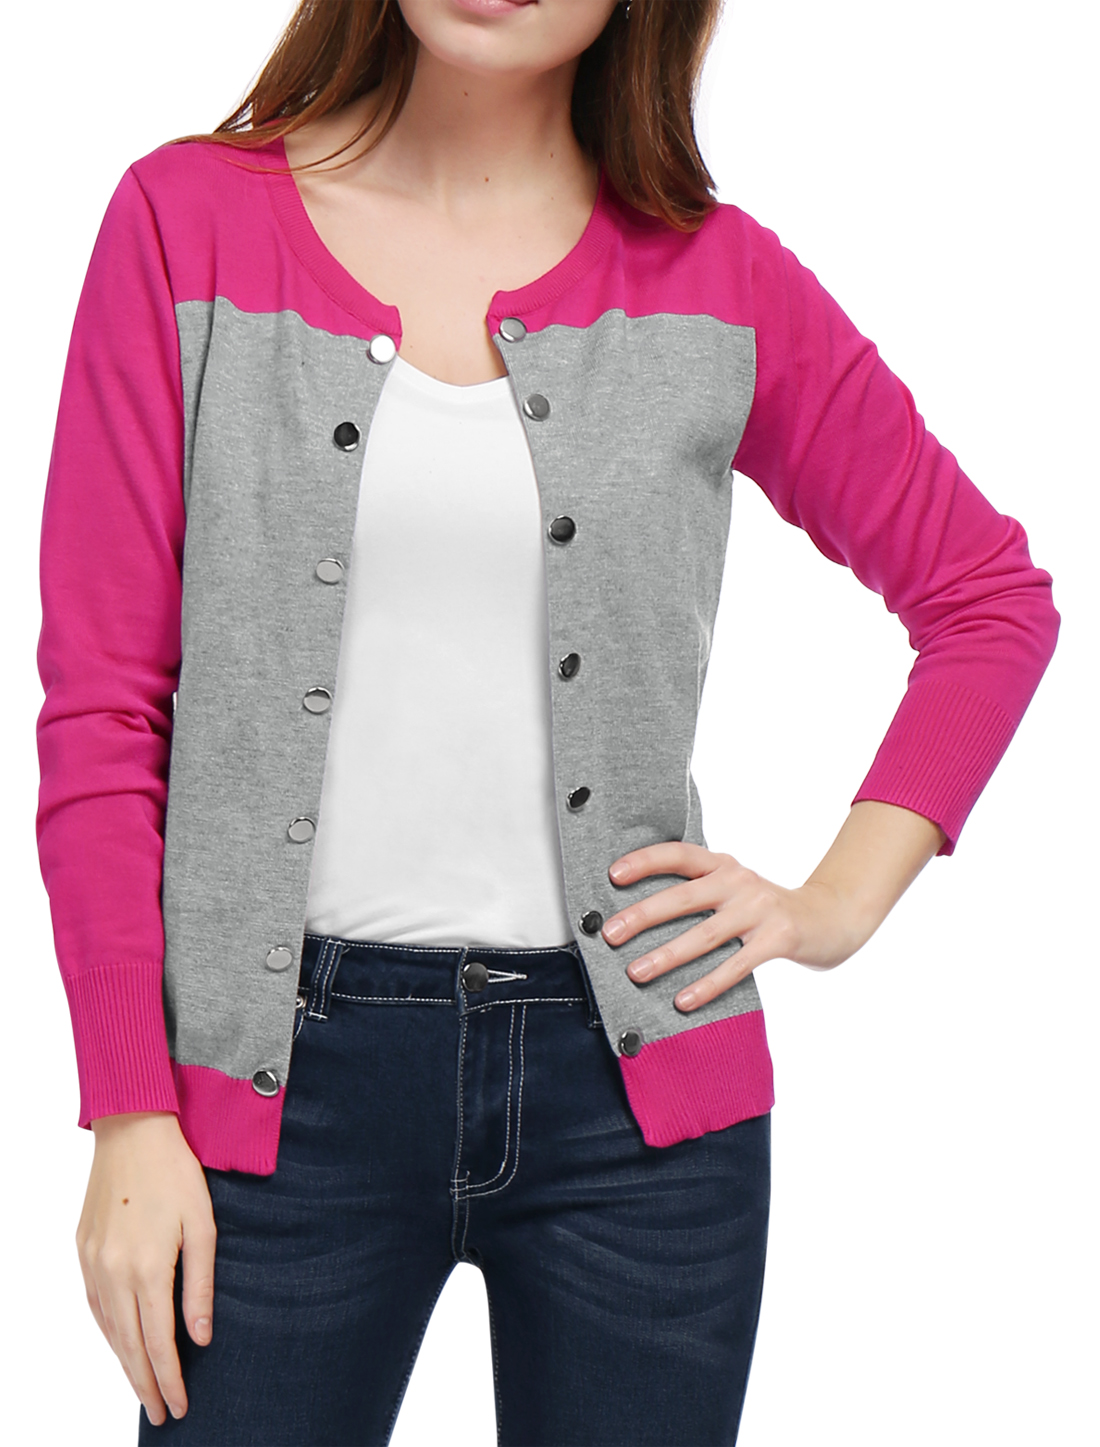 Women Color Block Buttons Decor Open Front Knit Cardigan Pink S